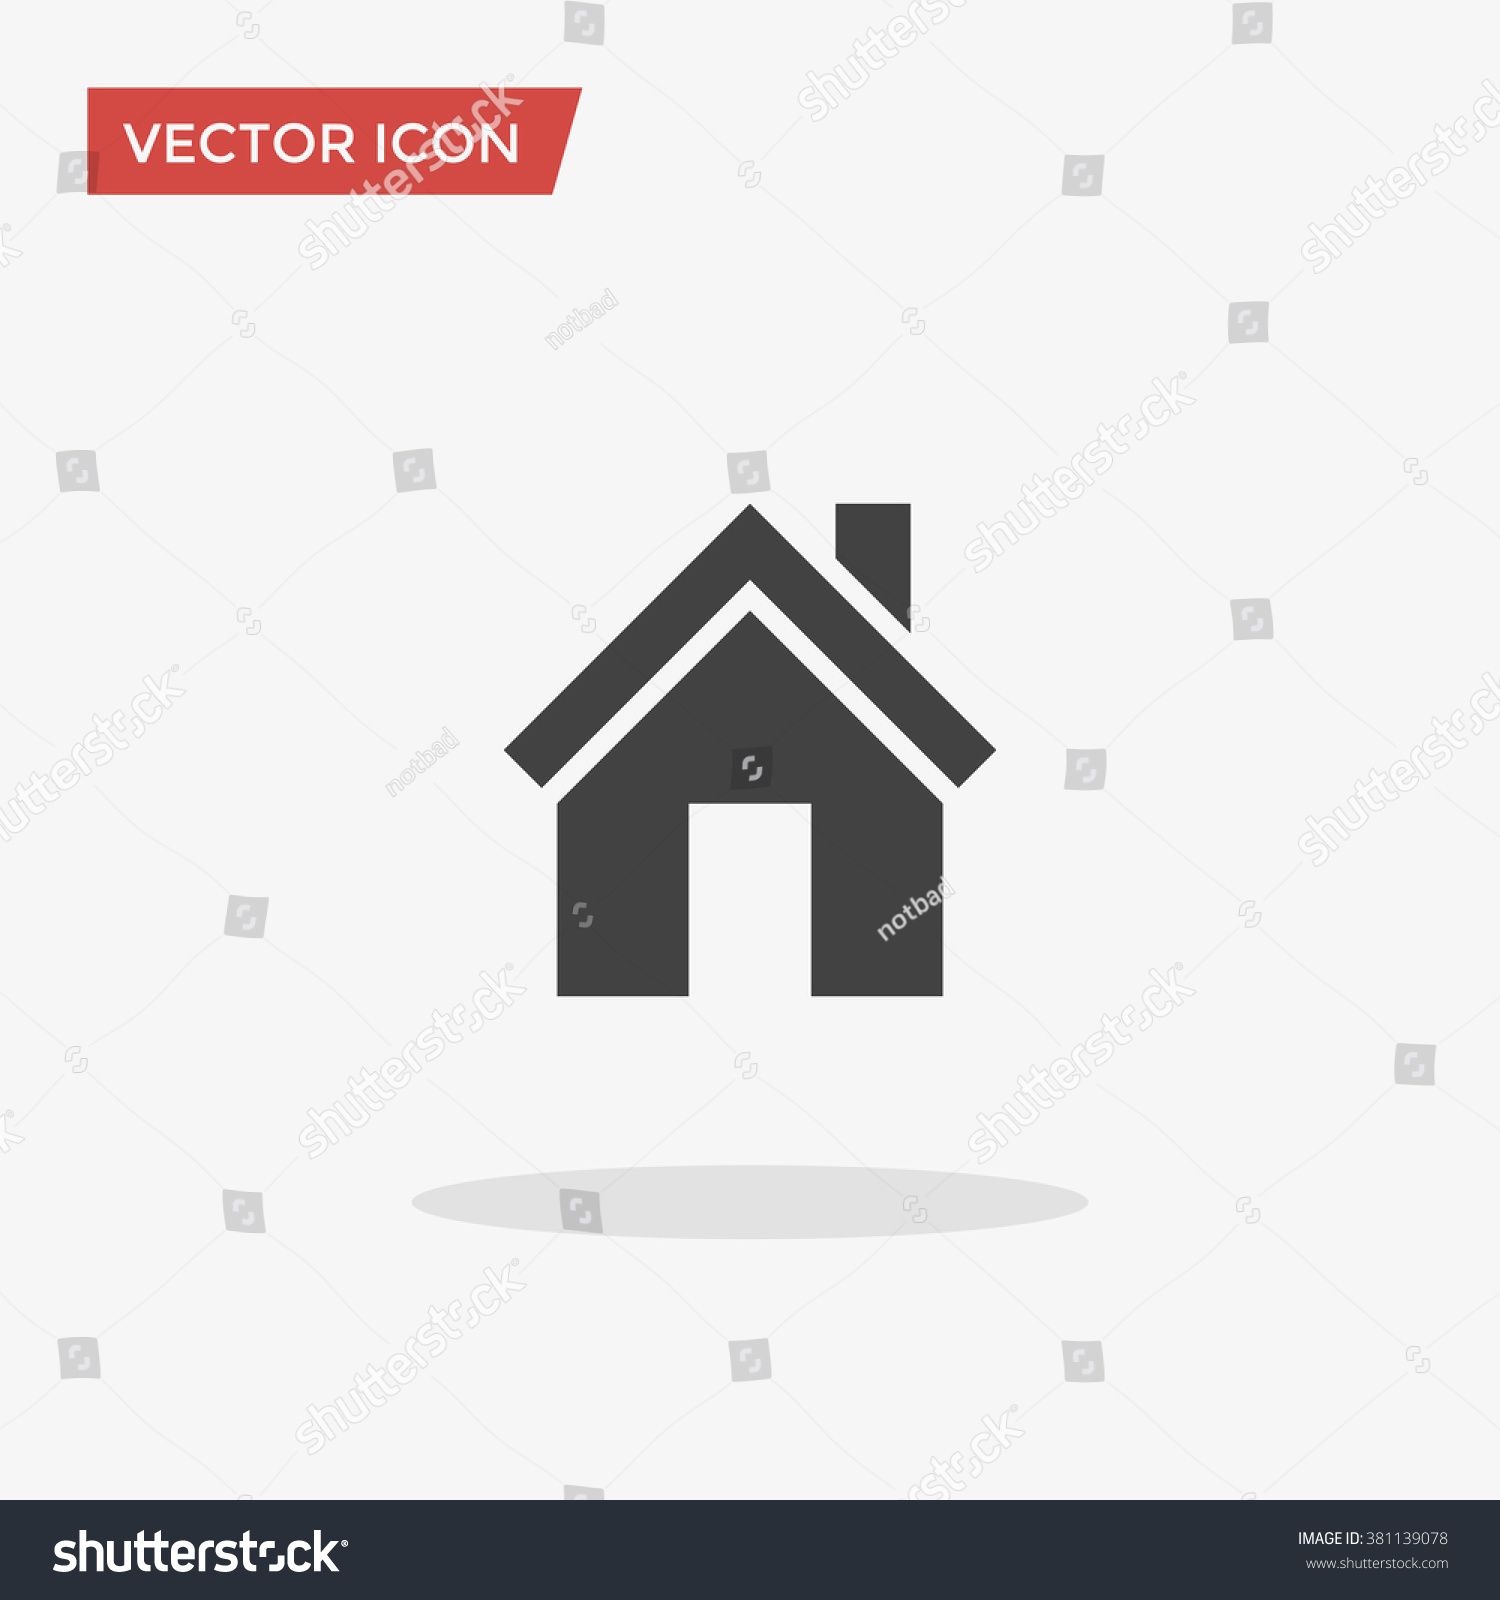 House icon trendy flat style isolated stock vector for House music symbol